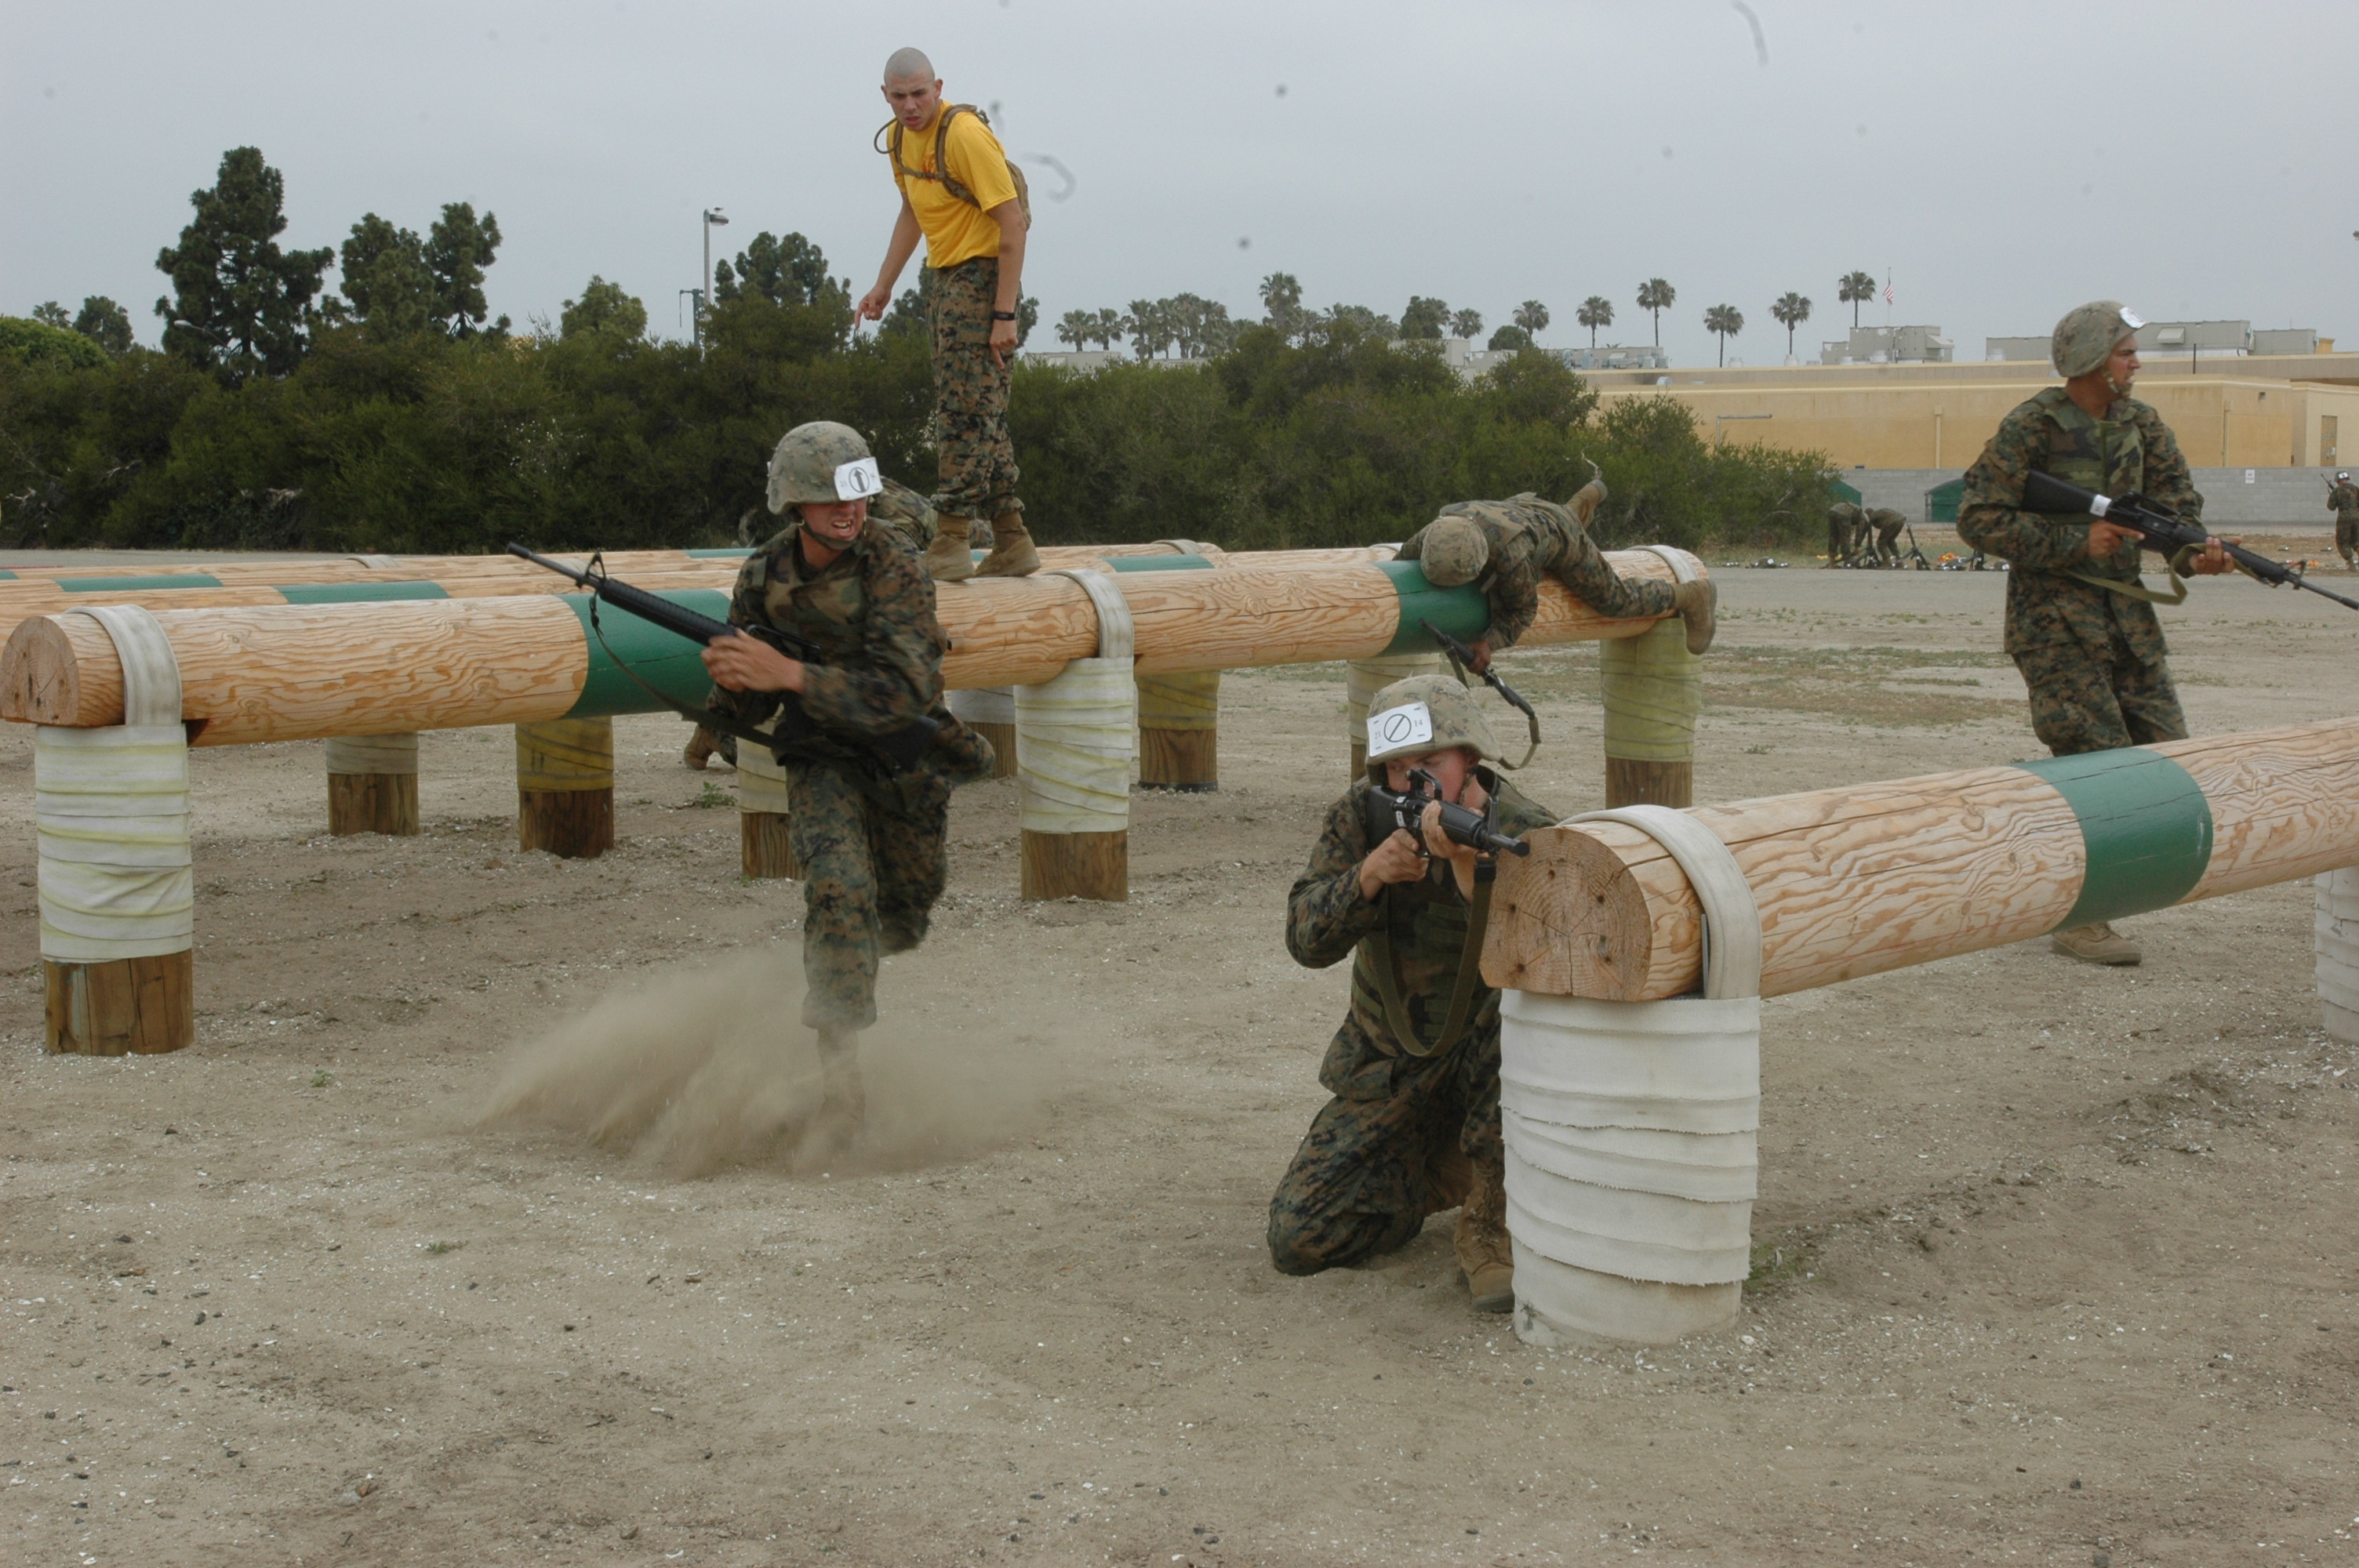 Company E Fire Teams Conquer Obstacle Course Marine Corps Physical Conditioning Platoon Basic Training Baseops